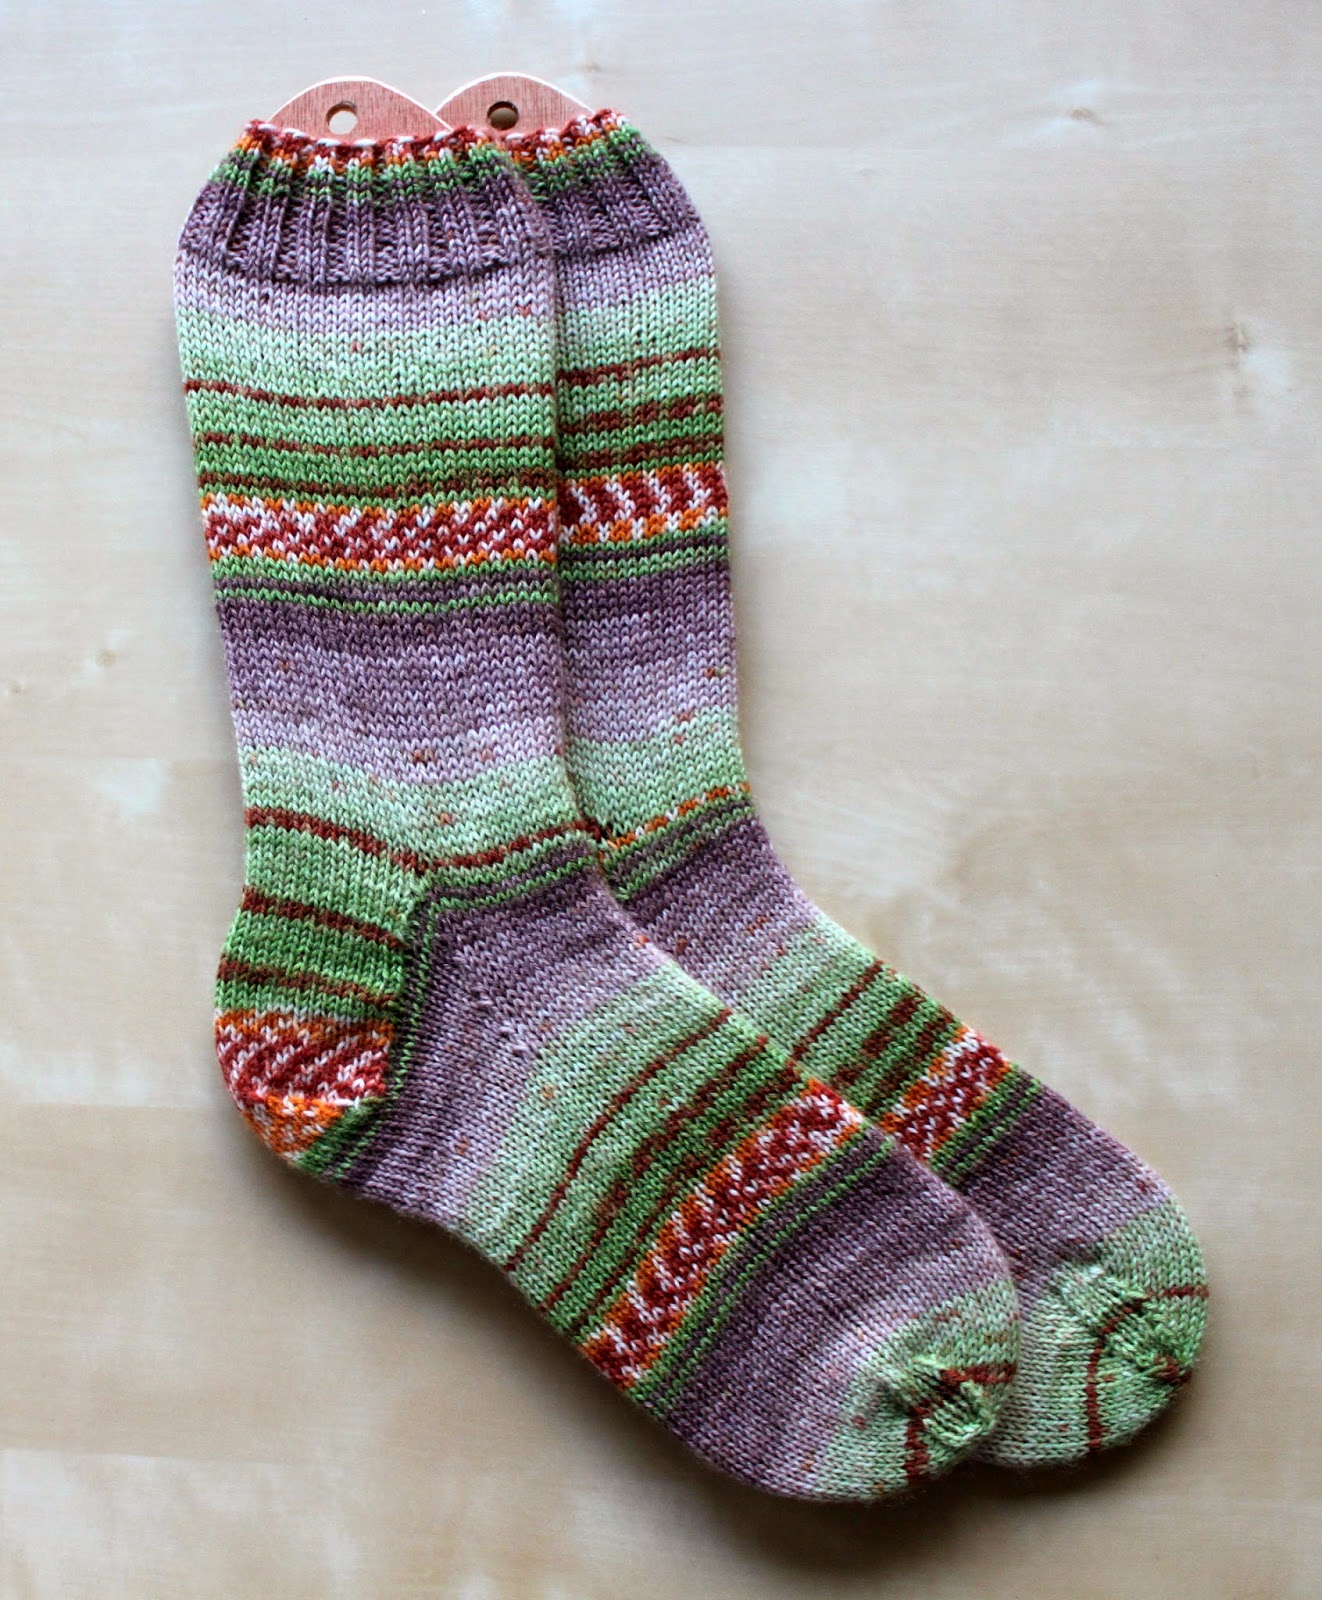 Hand Knitted Things: January 2014